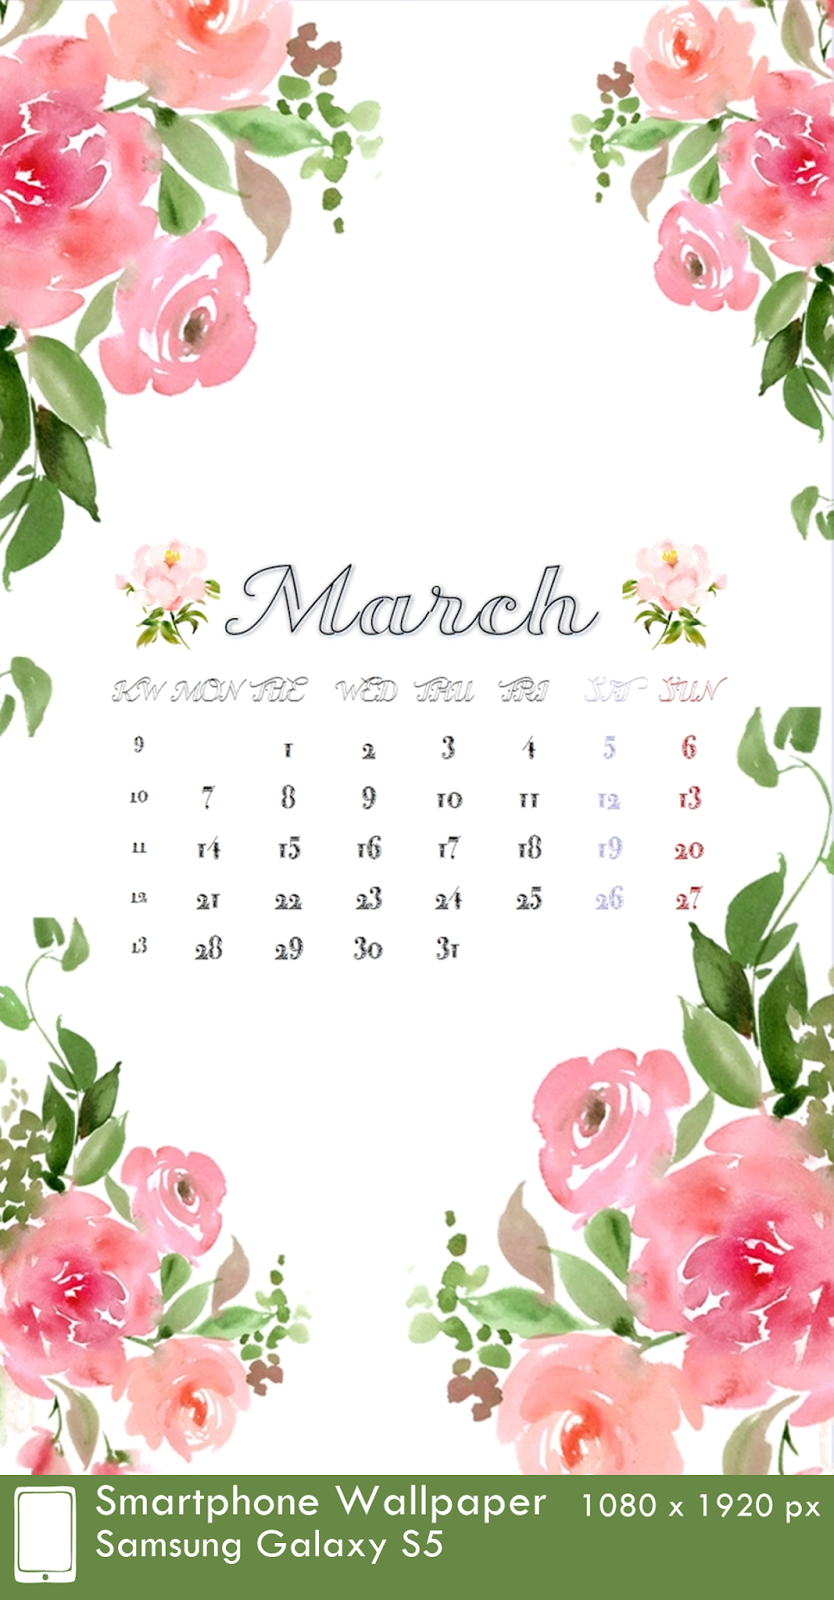 Samsung Galaxy S5 Wallpaper Calendar 3 March 1080 x 1920 px